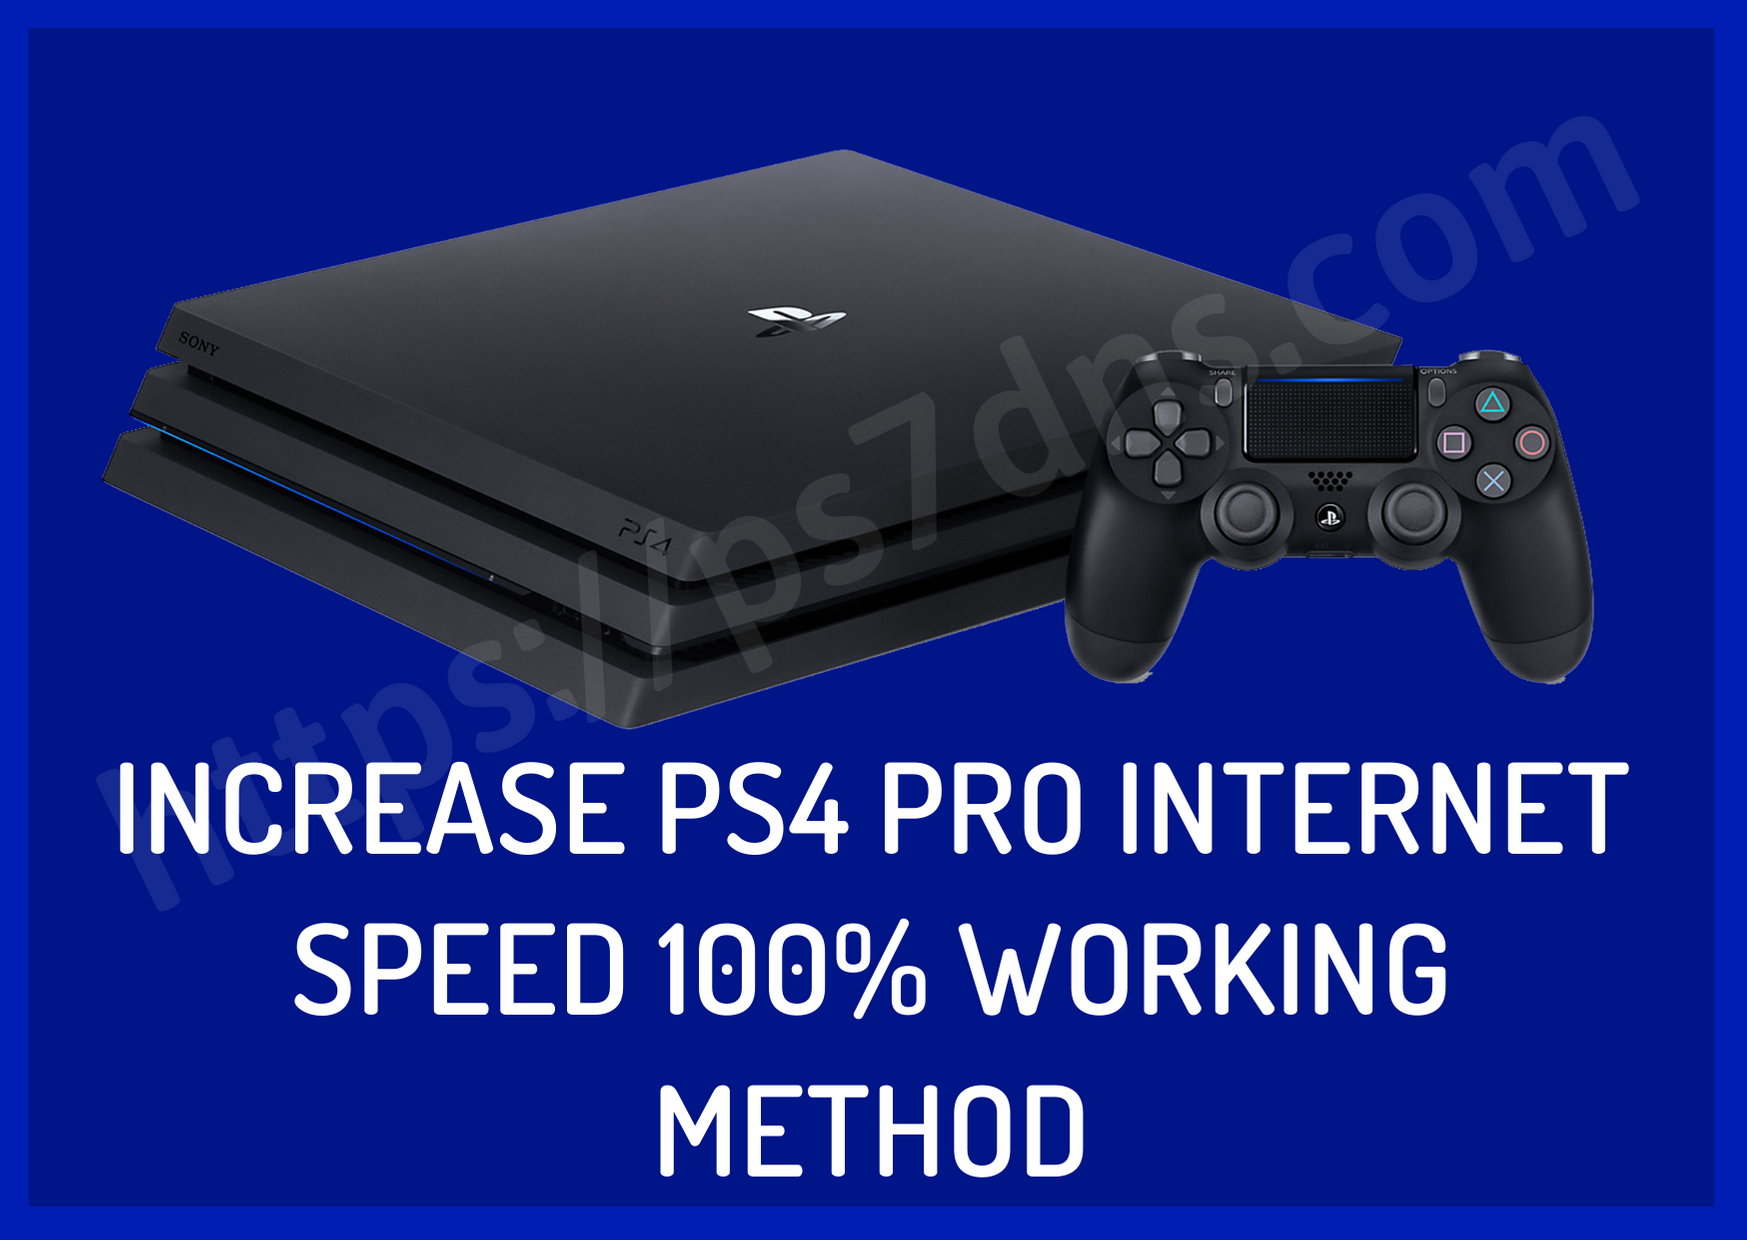 Increase PS4 Pro Internet Speed 100% Working Method